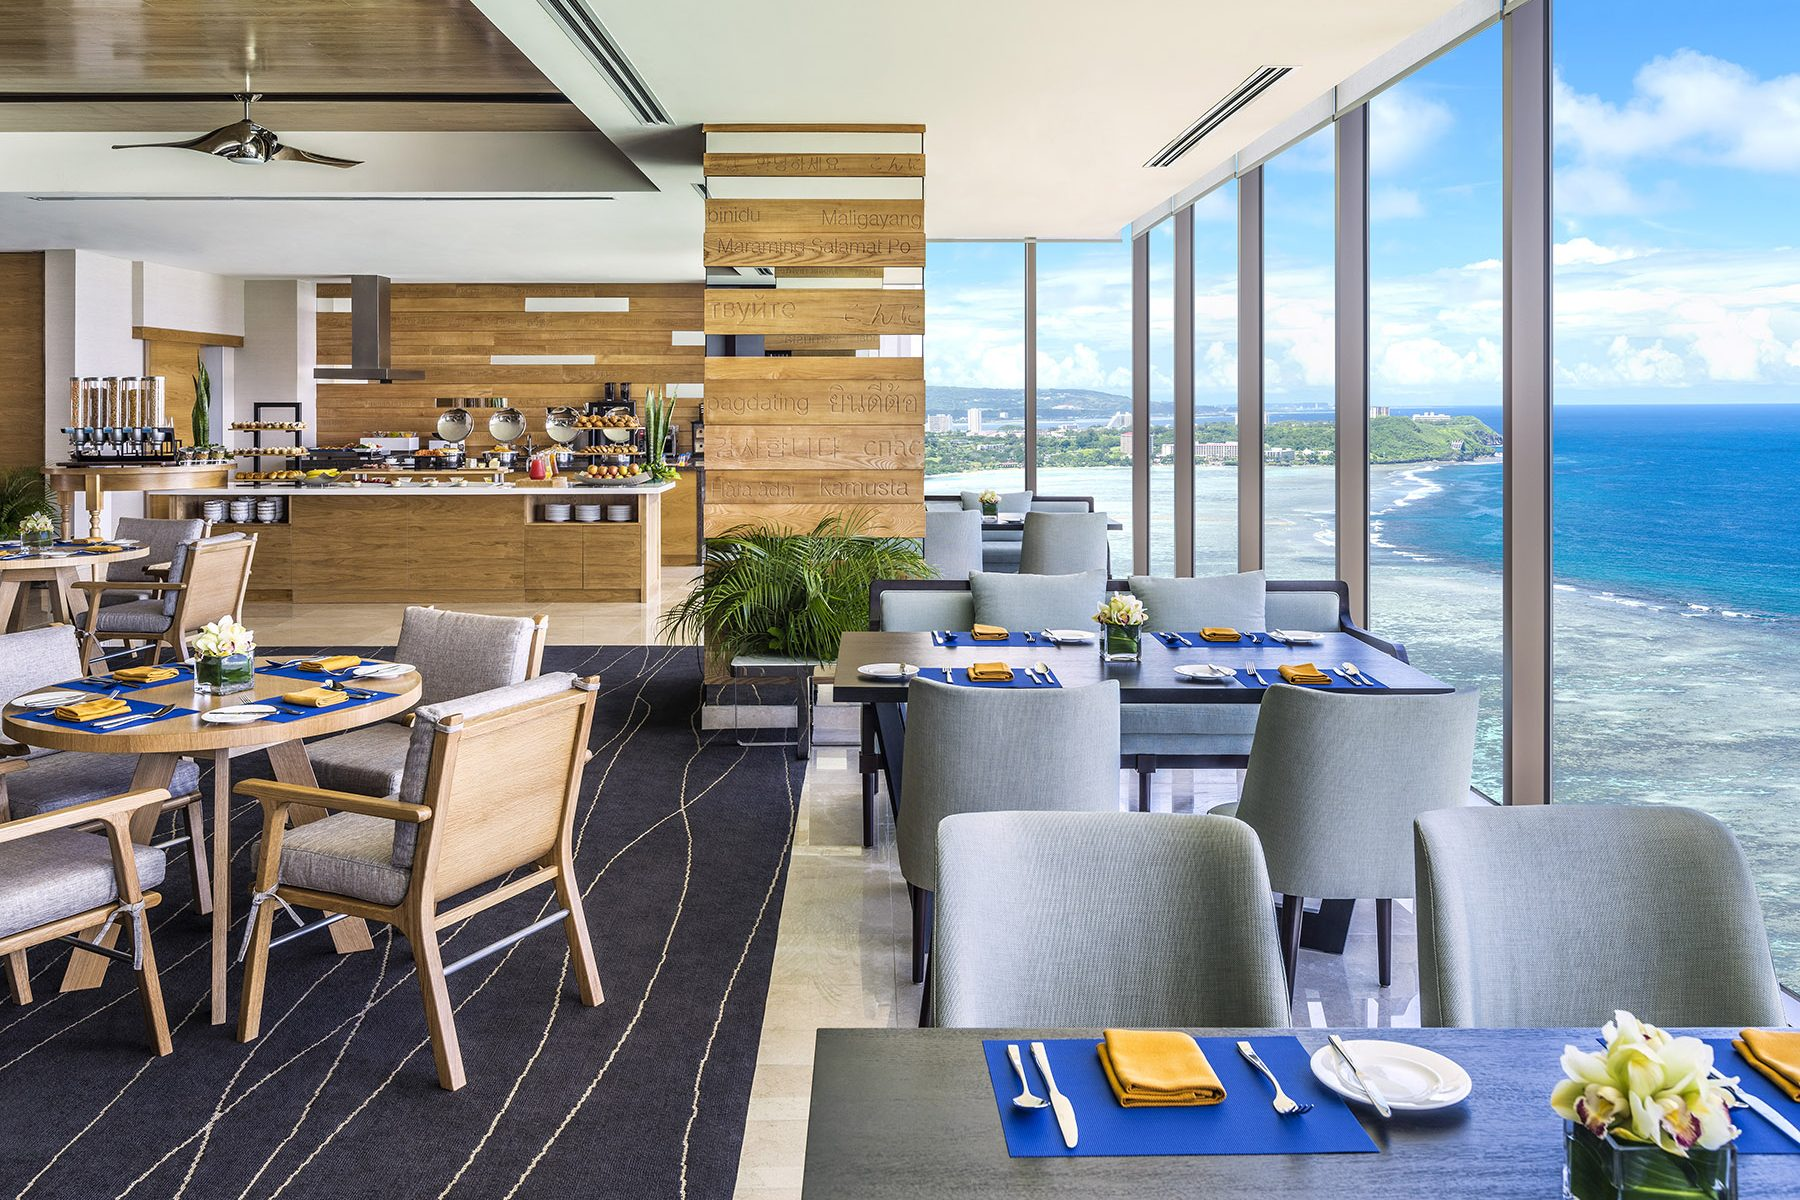 dusit thani guam resort - Breakfast with a view